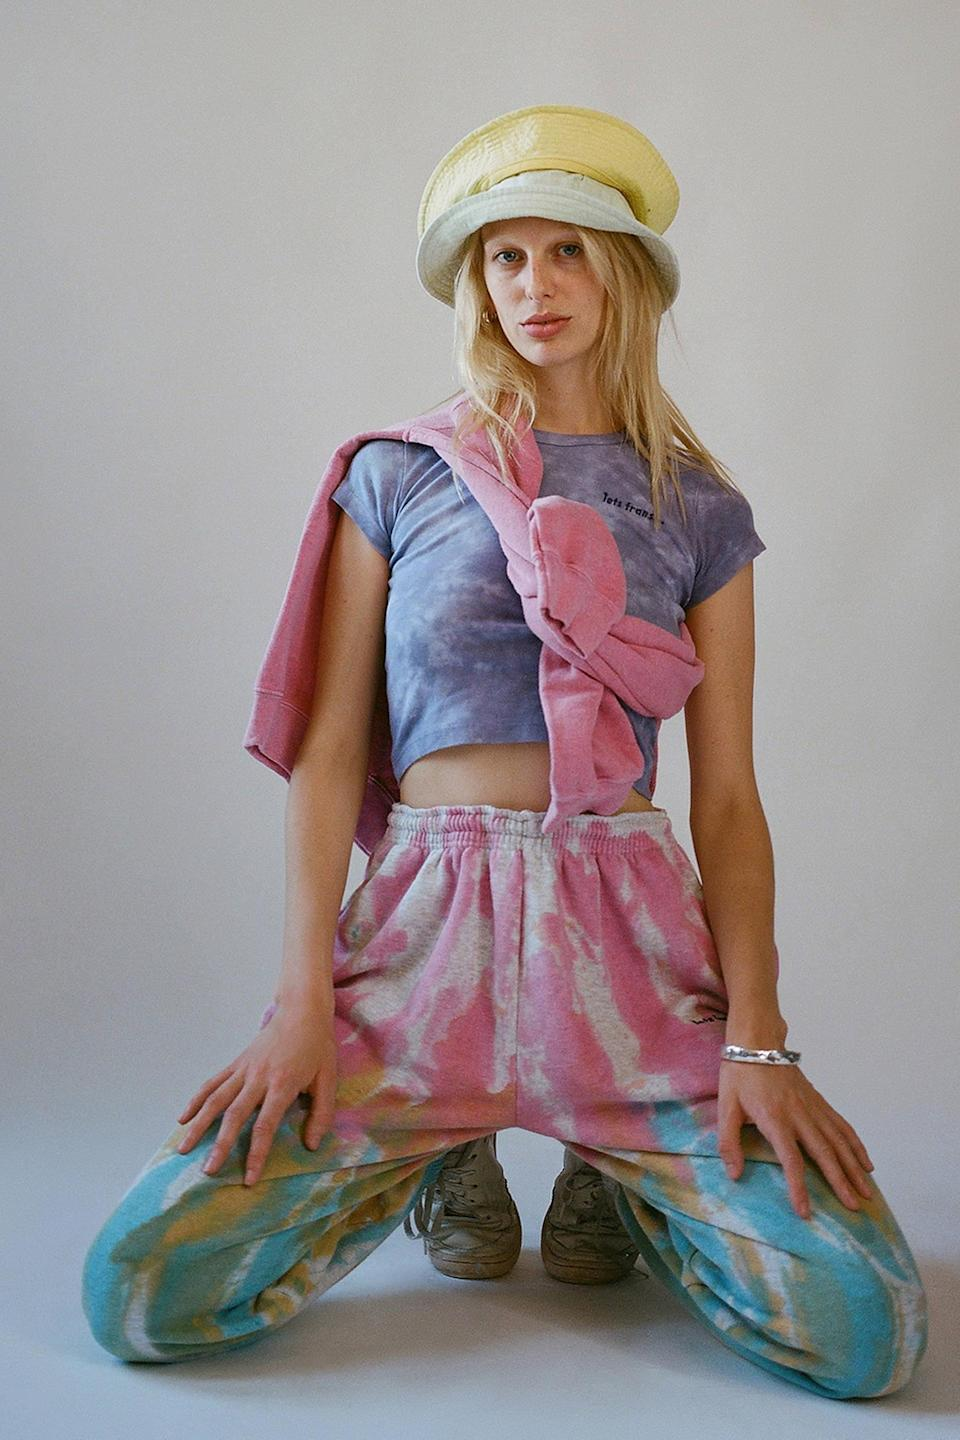 """Meet <a href=""""https://www.refinery29.com/en-us/2020/07/9941485/iets-frans-urban-outfitters-tie-dye-loungewear"""" rel=""""nofollow noopener"""" target=""""_blank"""" data-ylk=""""slk:iets frans..."""" class=""""link rapid-noclick-resp"""">iets frans...</a>: Urban Outfitter's affordable line of ultra-cool sportswear. <br> <br> <strong>iets frans</strong> Tie-Dye Jogger Pant, $, available at <a href=""""https://go.skimresources.com/?id=30283X879131&url=https%3A%2F%2Fwww.urbanoutfitters.com%2Fshop%2Fiets-frans-tie-dye-jogger-pant2%3Fcategory%3DSHOPBYBRAND%26color%3D066%26type%3DREGULAR%26quantity%3D1"""" rel=""""nofollow noopener"""" target=""""_blank"""" data-ylk=""""slk:Urban Outfitters"""" class=""""link rapid-noclick-resp"""">Urban Outfitters</a>"""